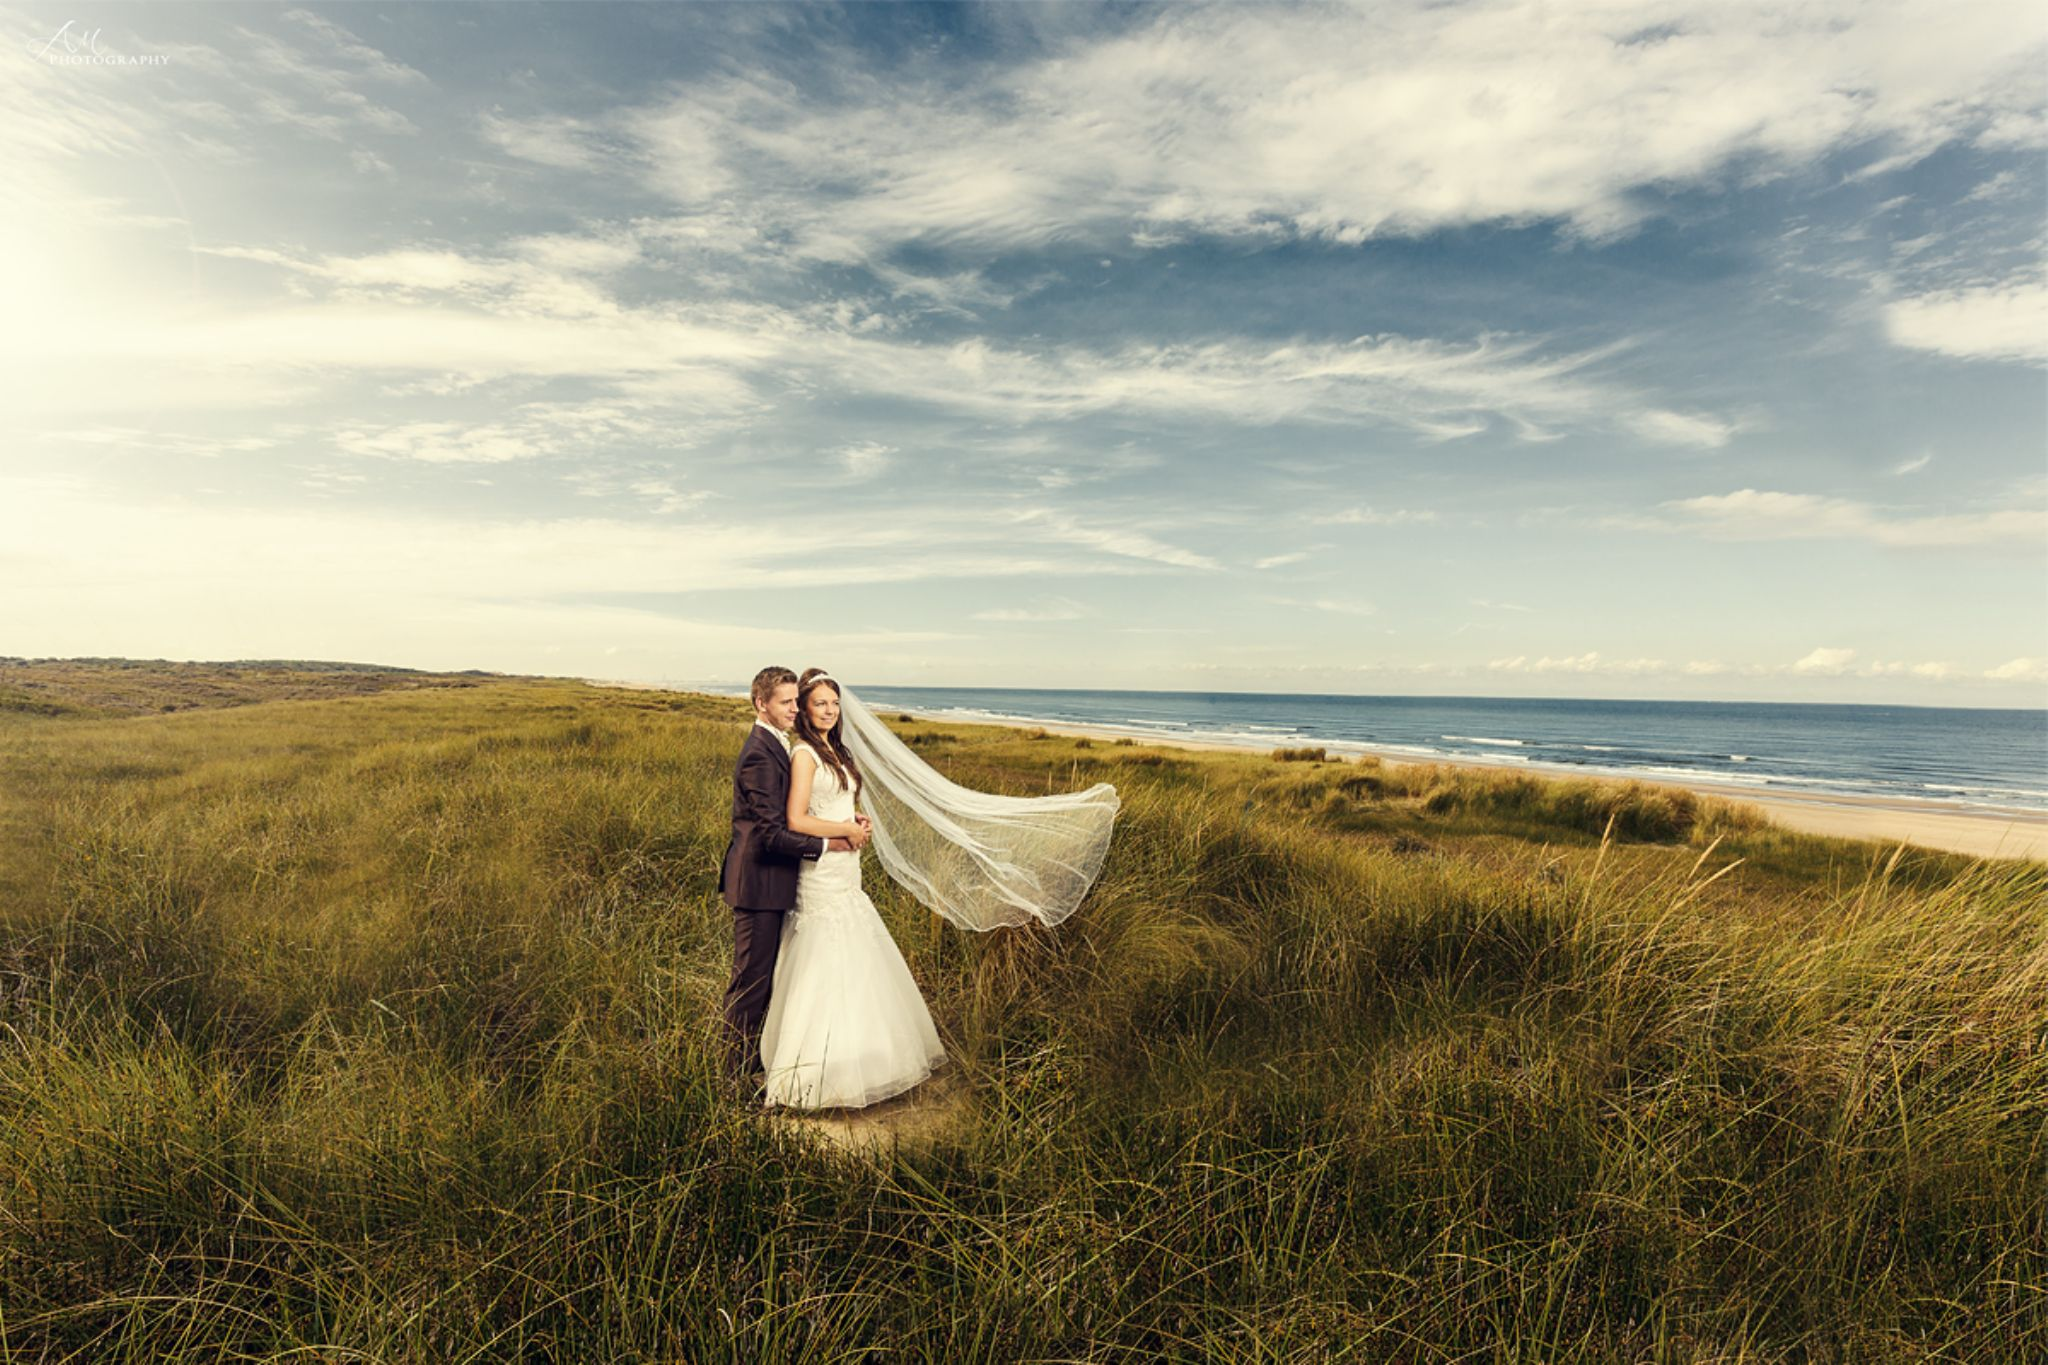 After Wedding on the Beach by AM_Photography